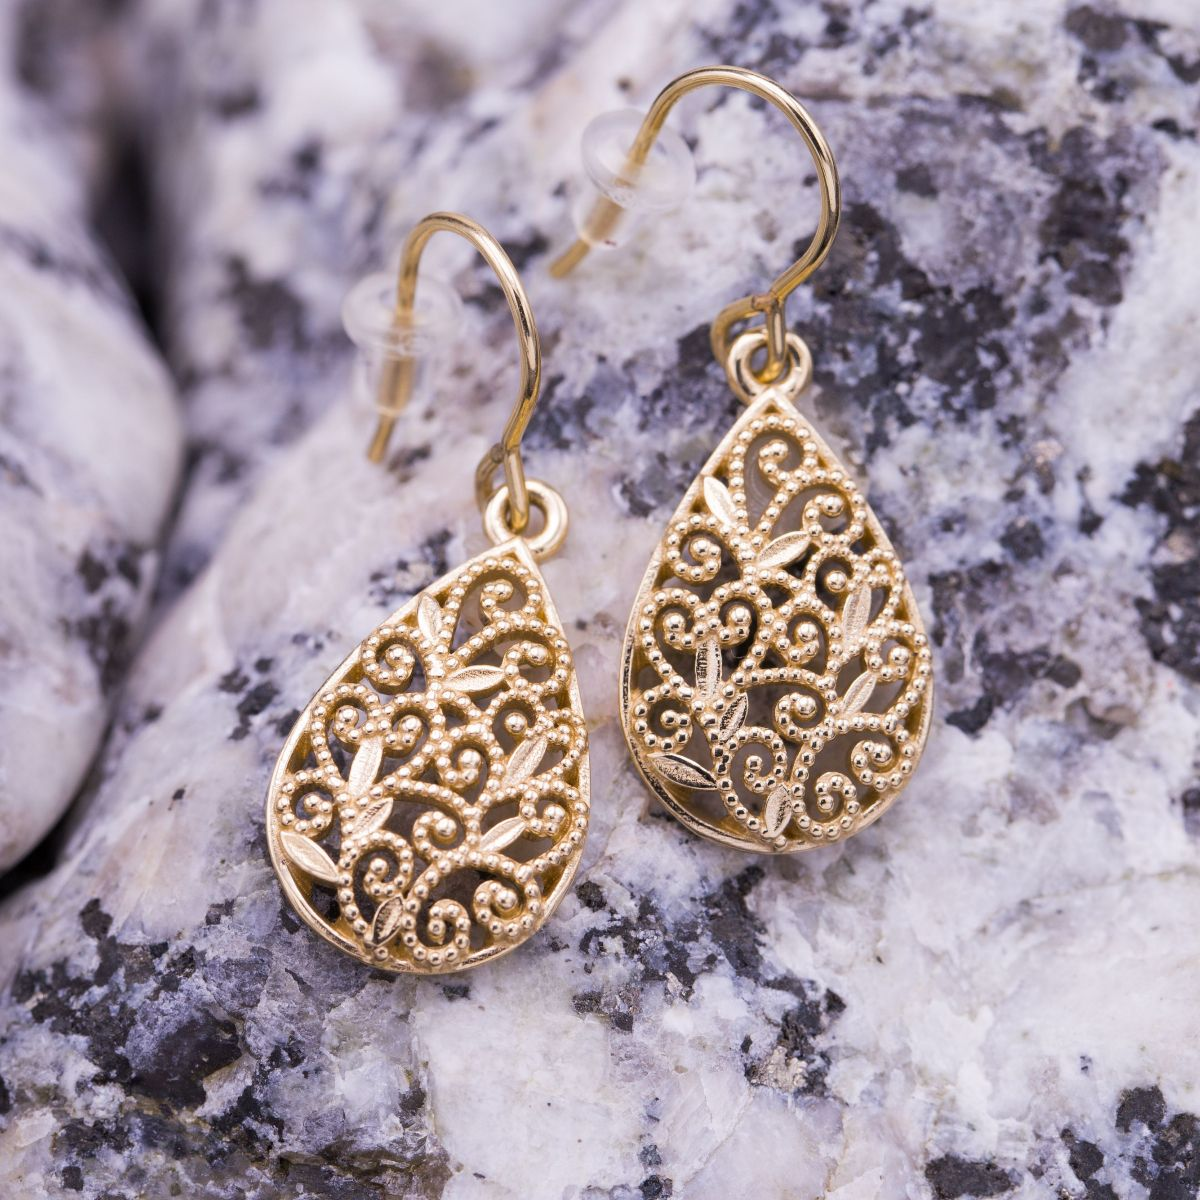 599afe11a Delicate filigree earrings we created from photos of a lost heirloom.